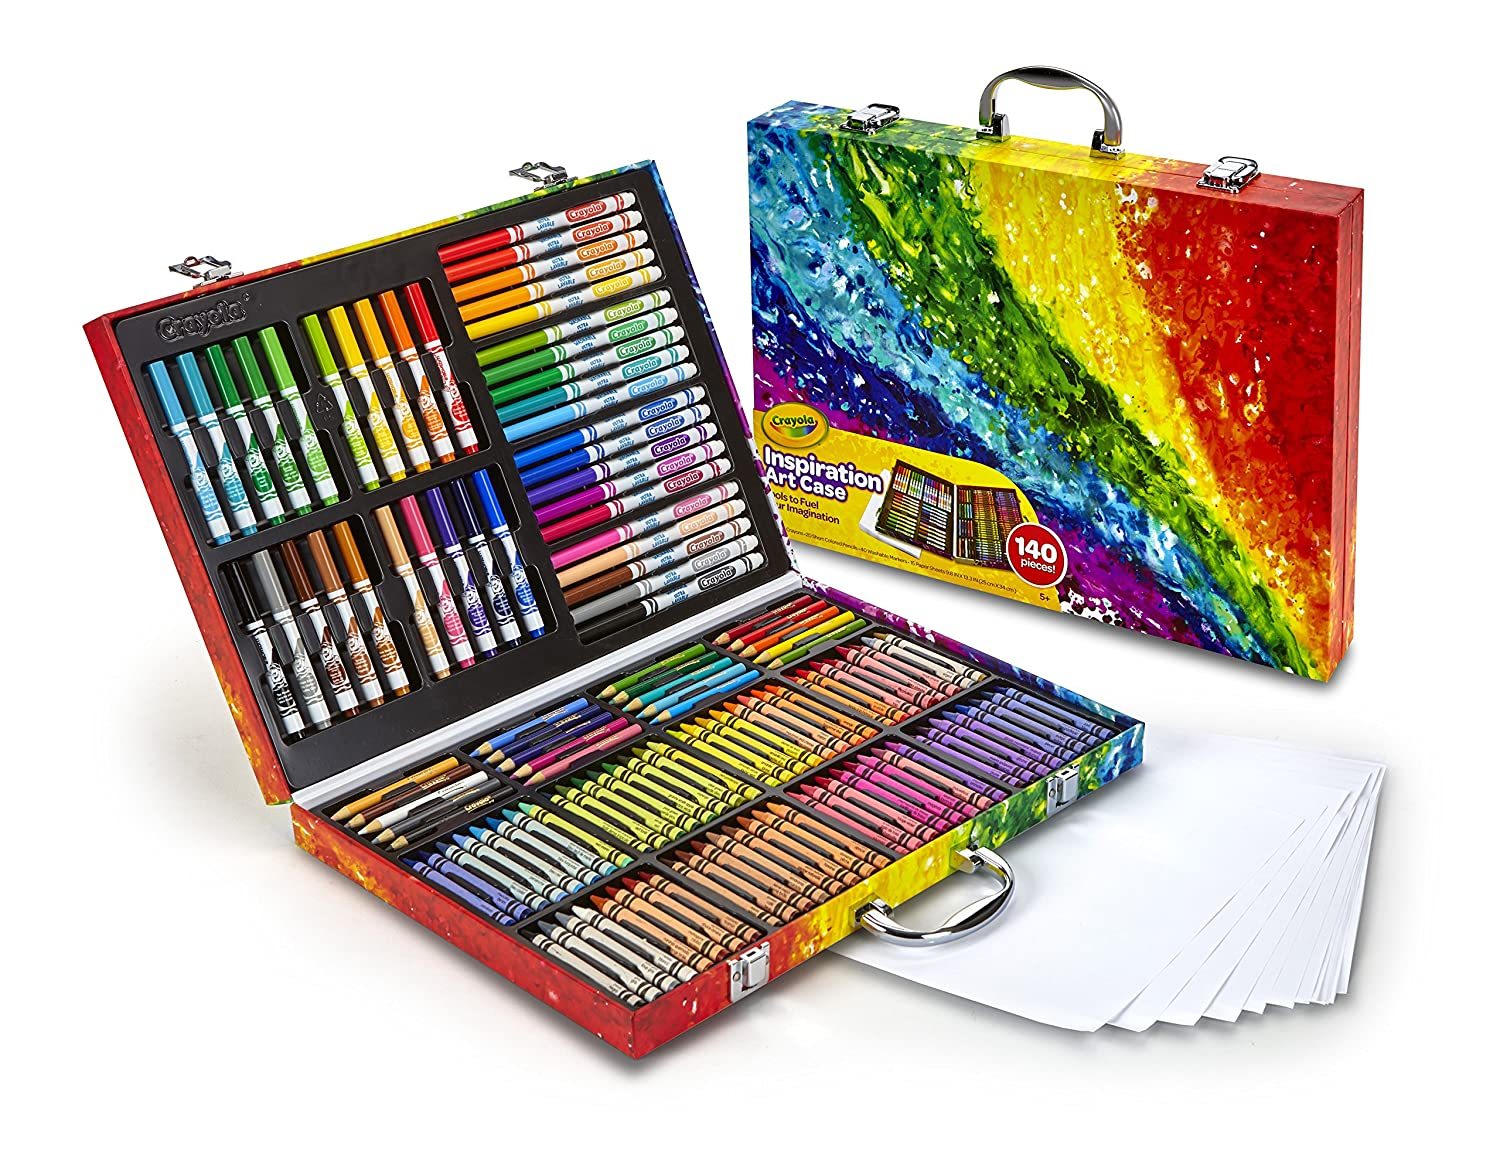 Crayola Inspiration Art Case: 140 Pieces, Art Set, Easter Gifts for Kids, Age 4, 5, 6